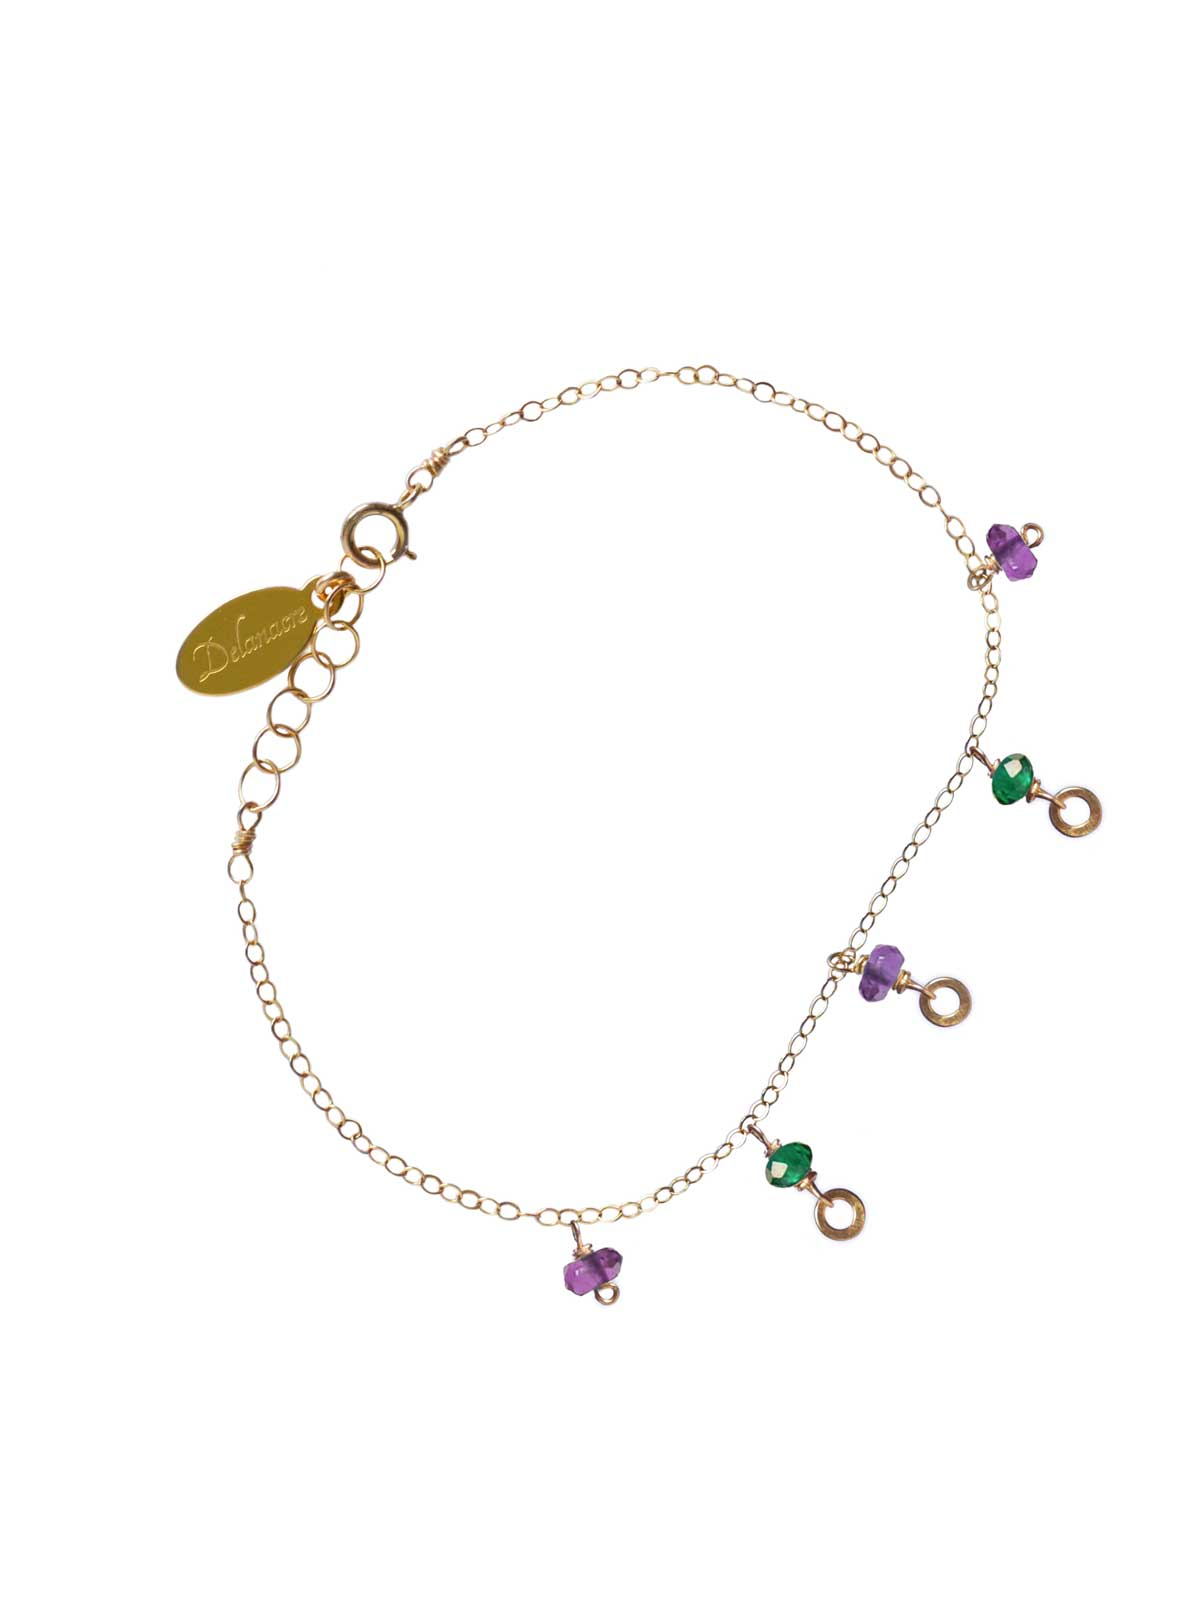 Bracelet 14K Gold-filled chain faceted Amethyst and Green Onyx